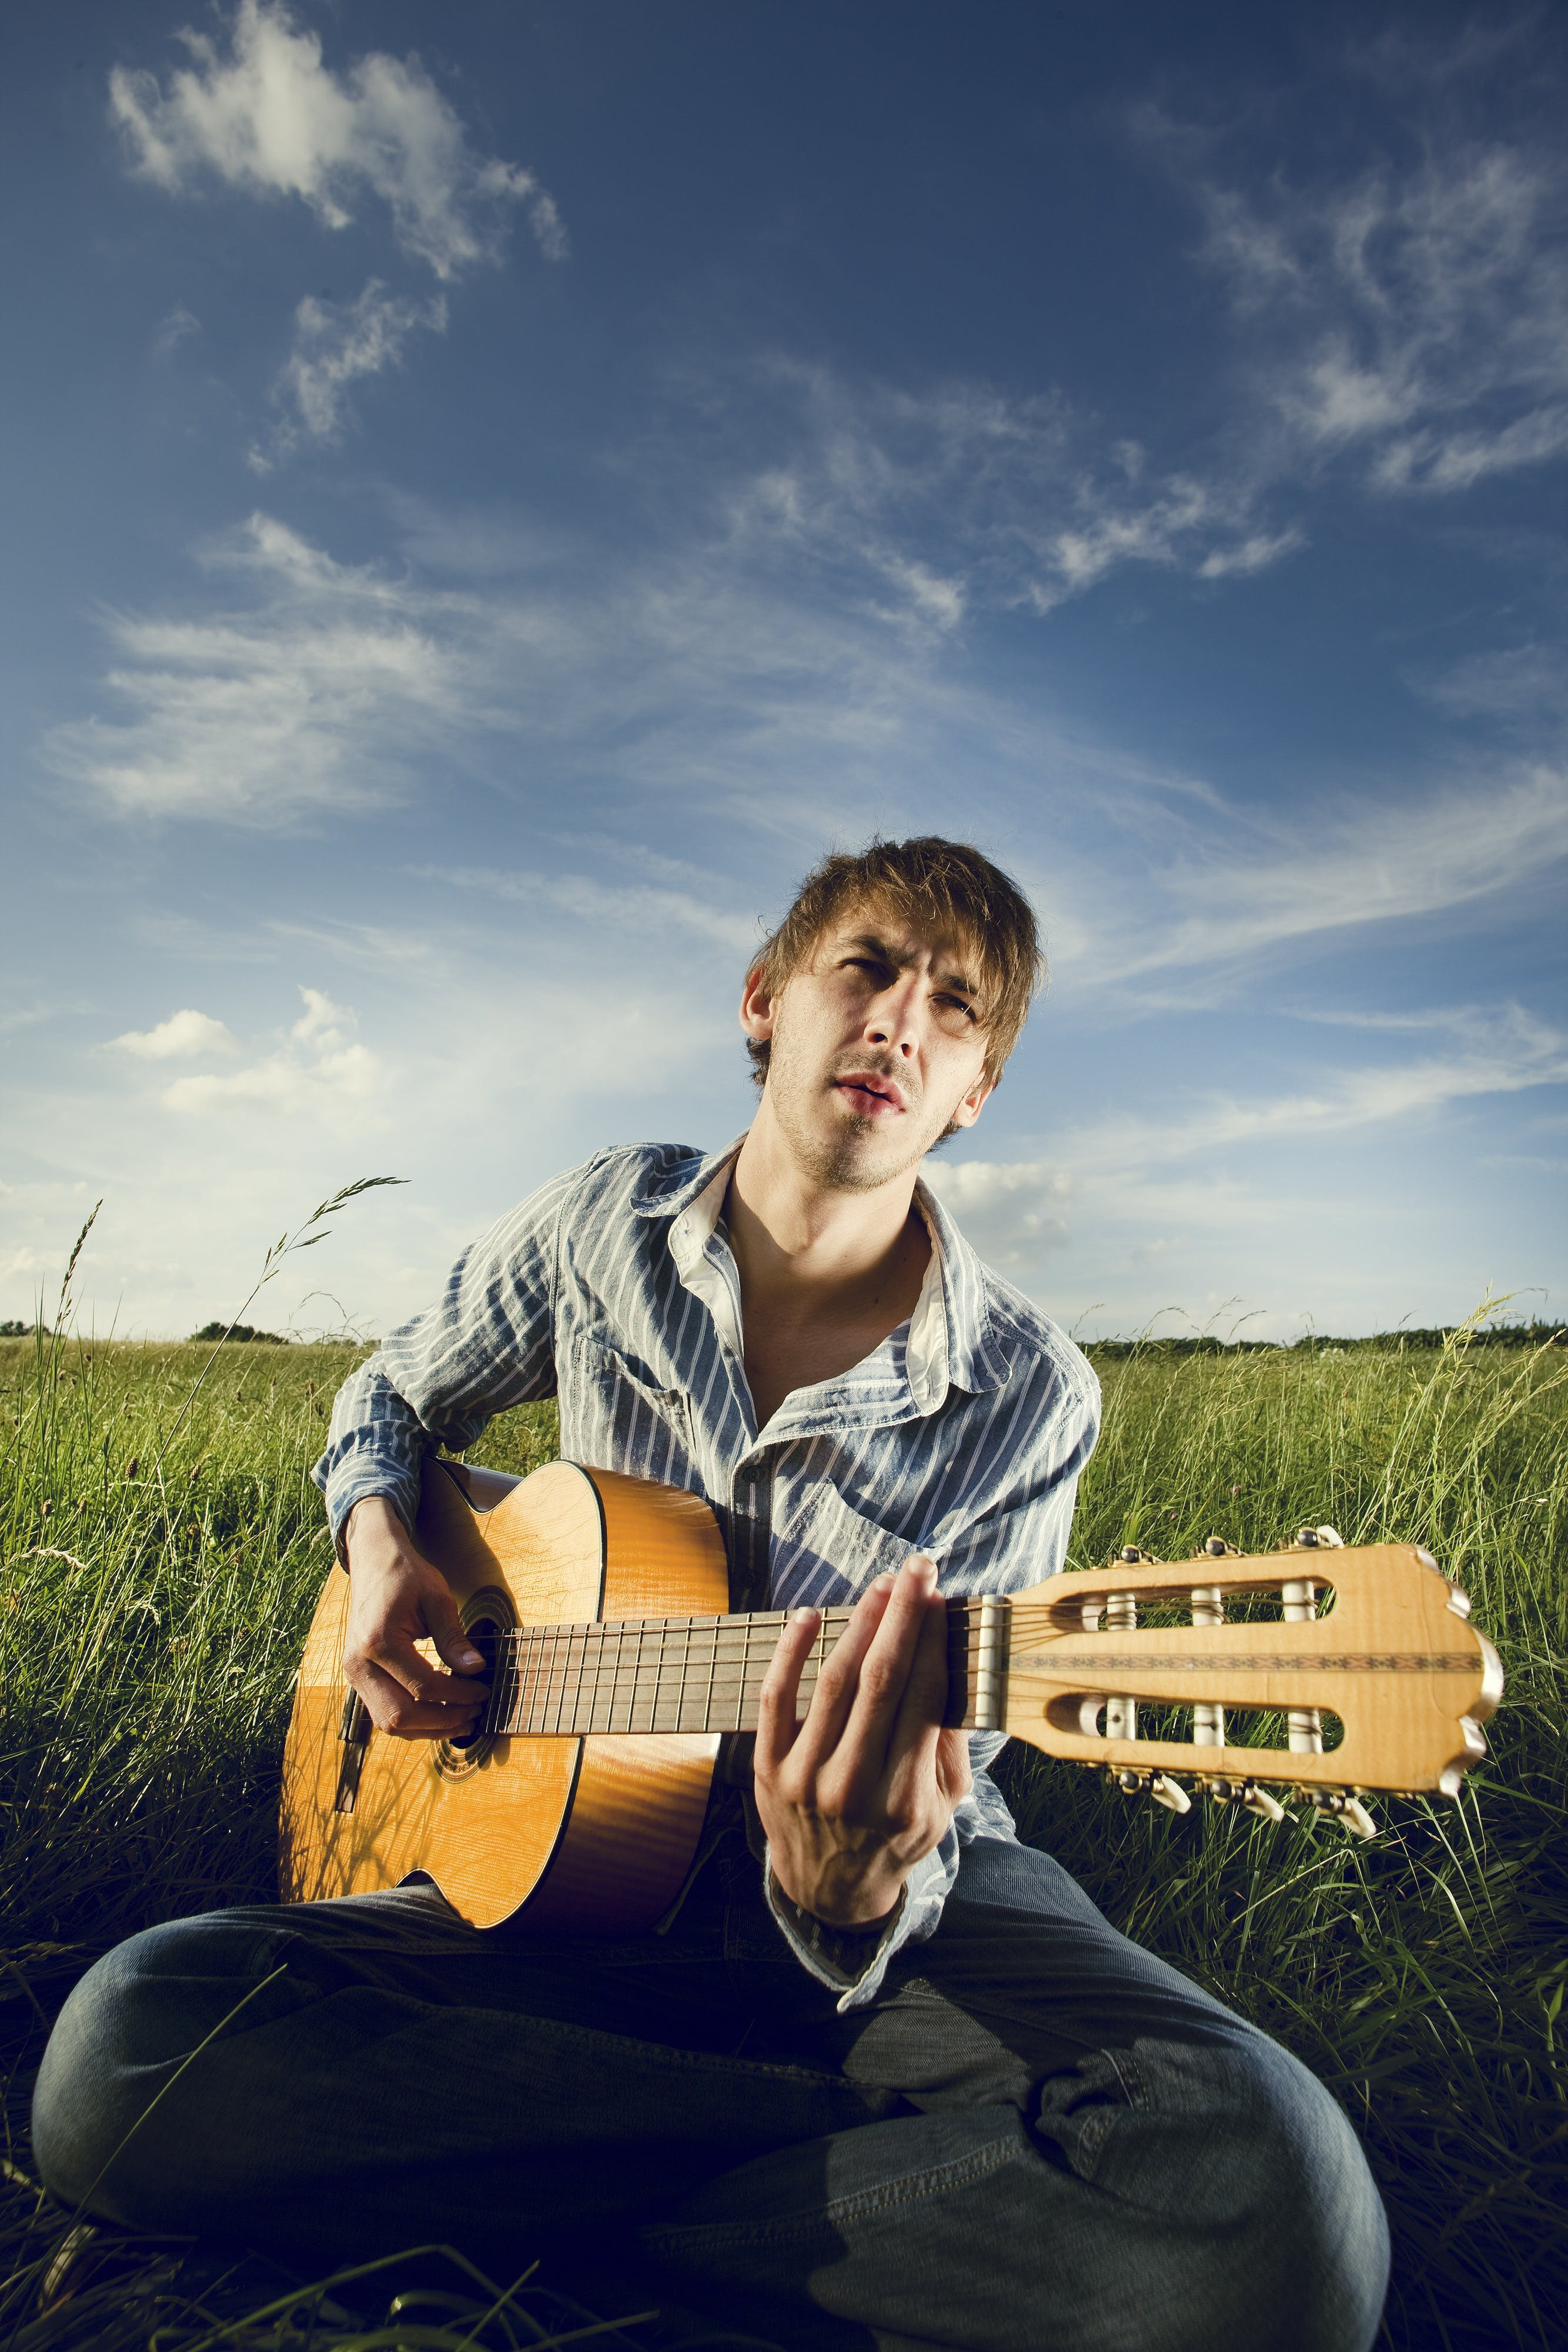 Man Playing Classical Guitar Outdoors